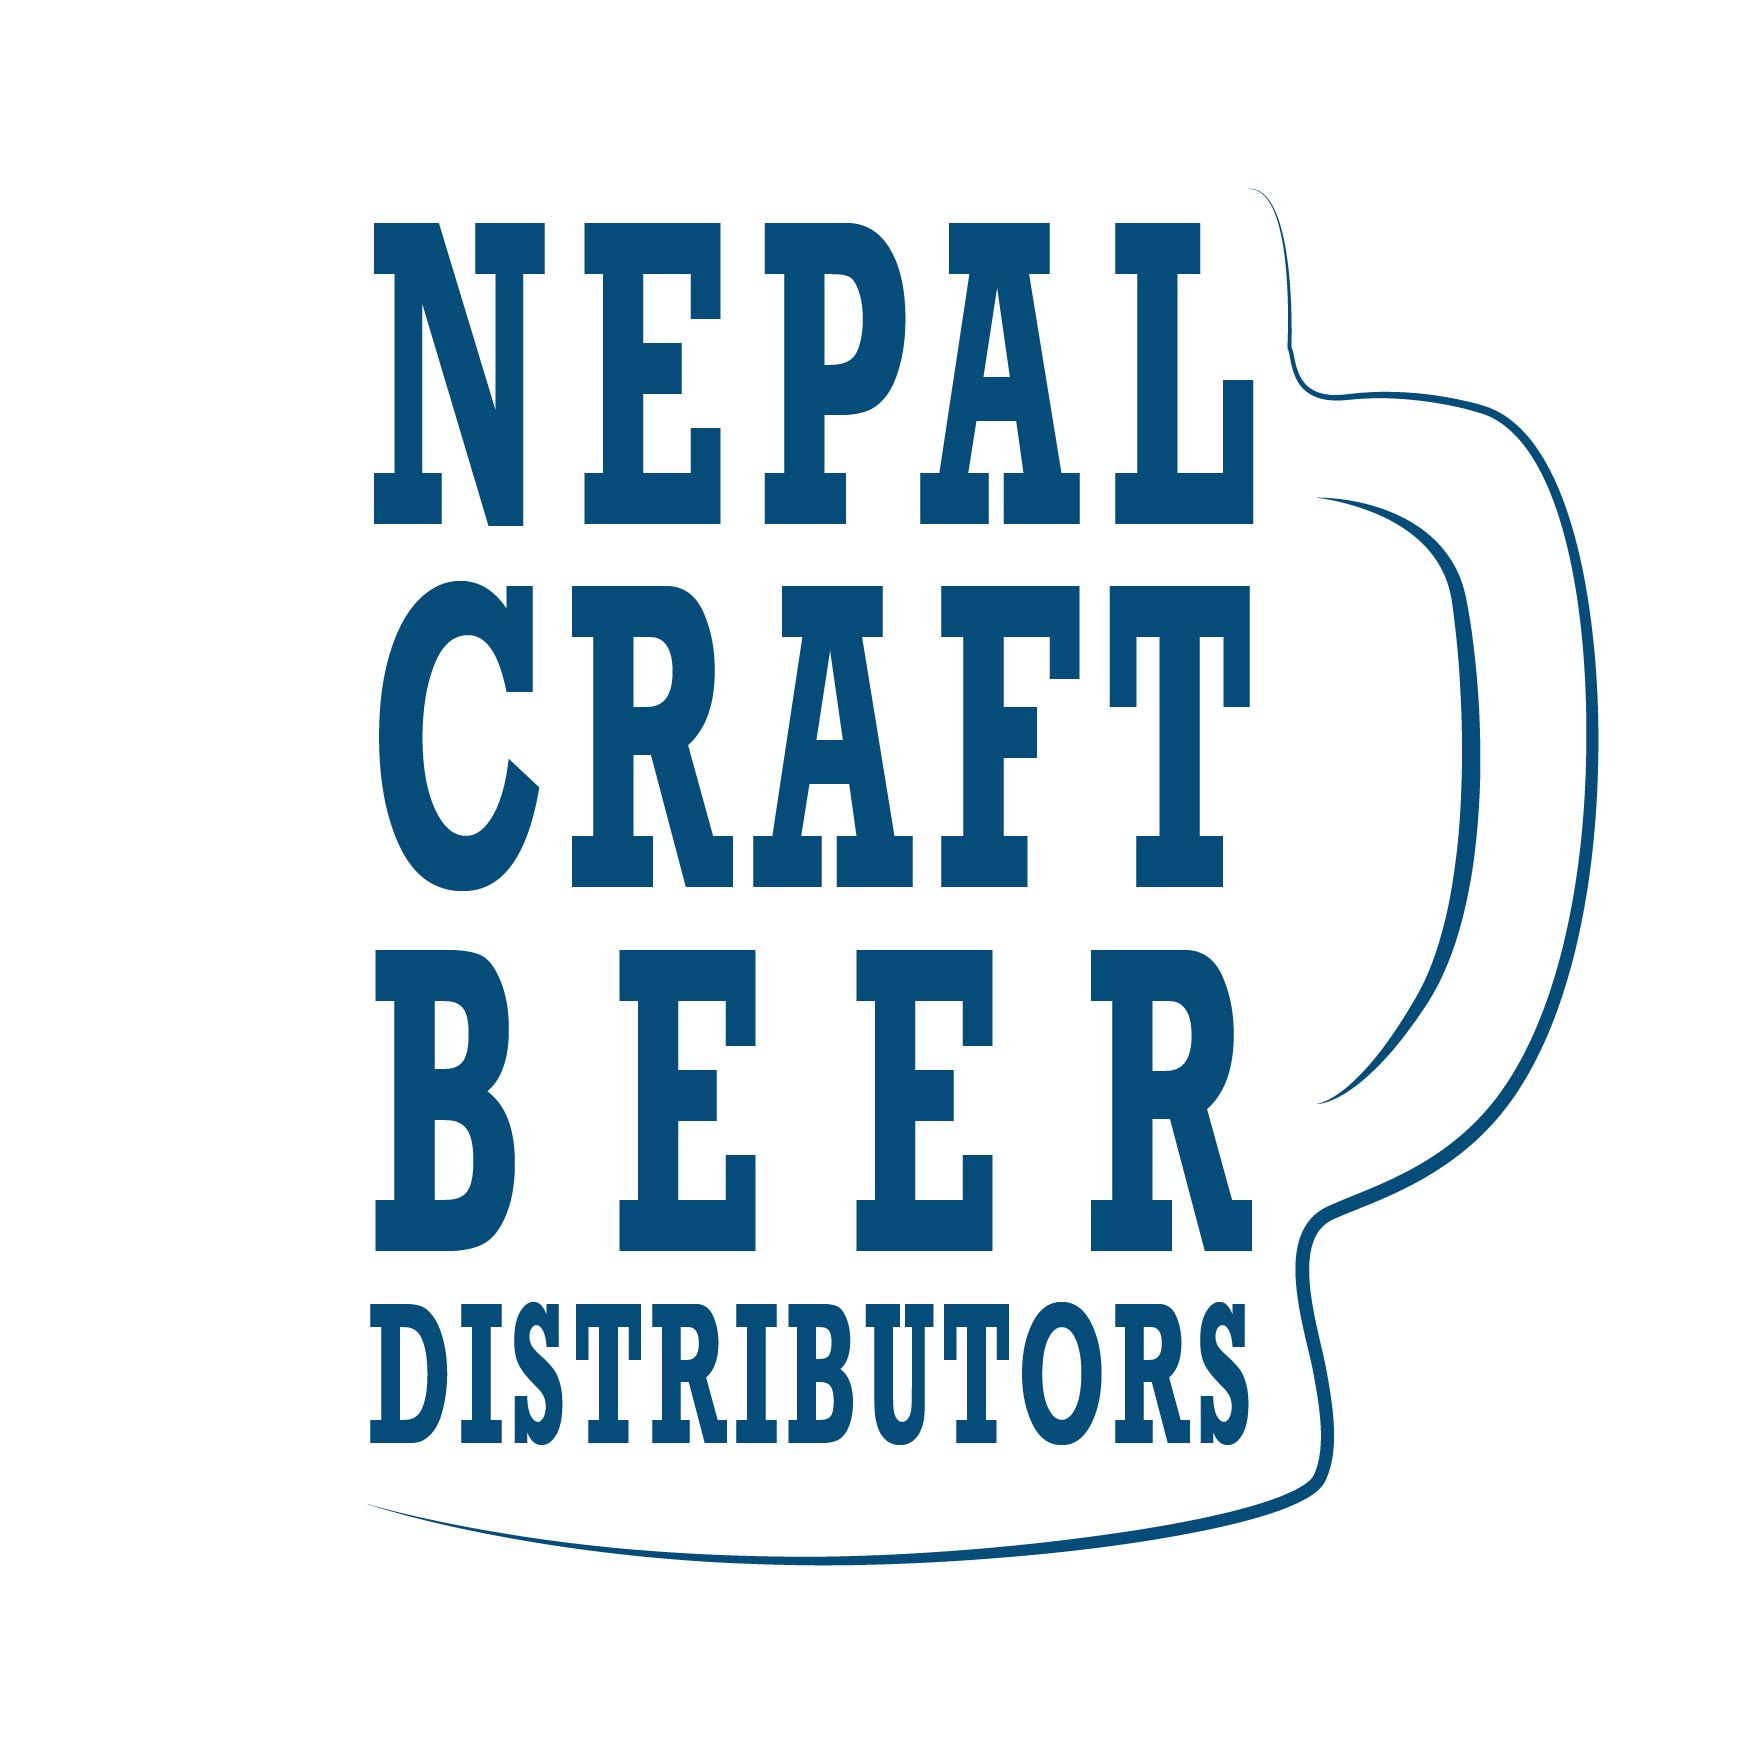 Nepal Craft Beer Distributors